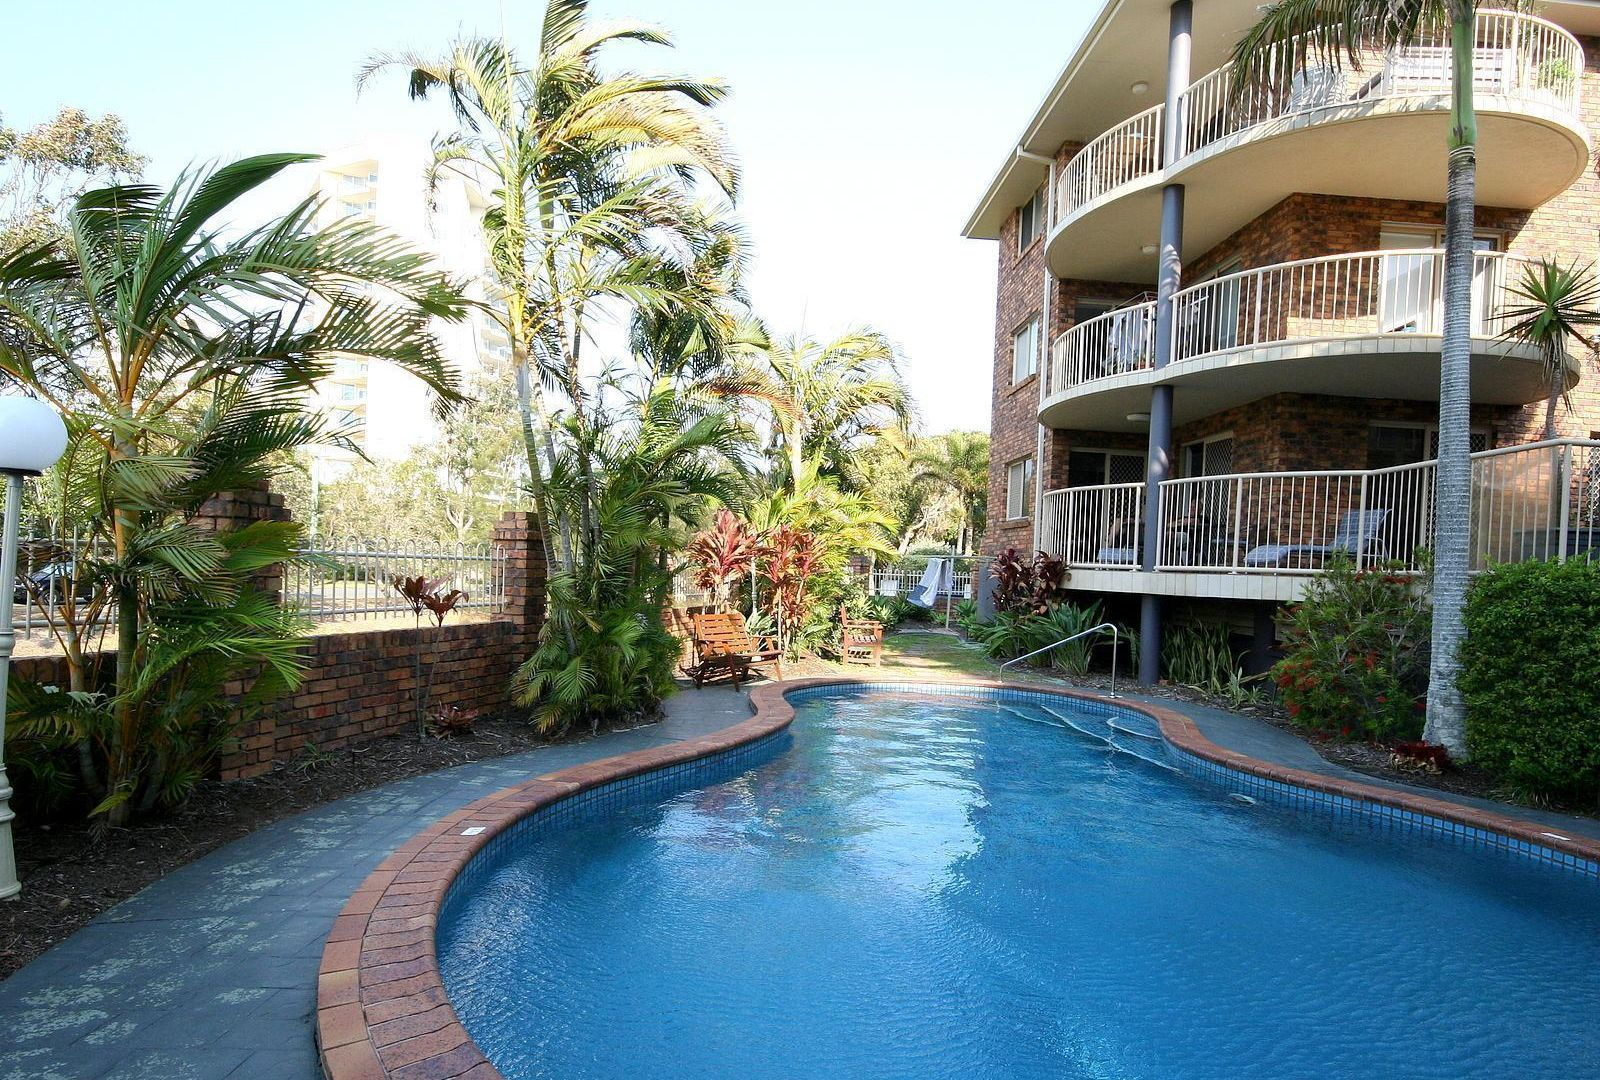 13/15-17 South Street, Kirra QLD 4225, Image 1